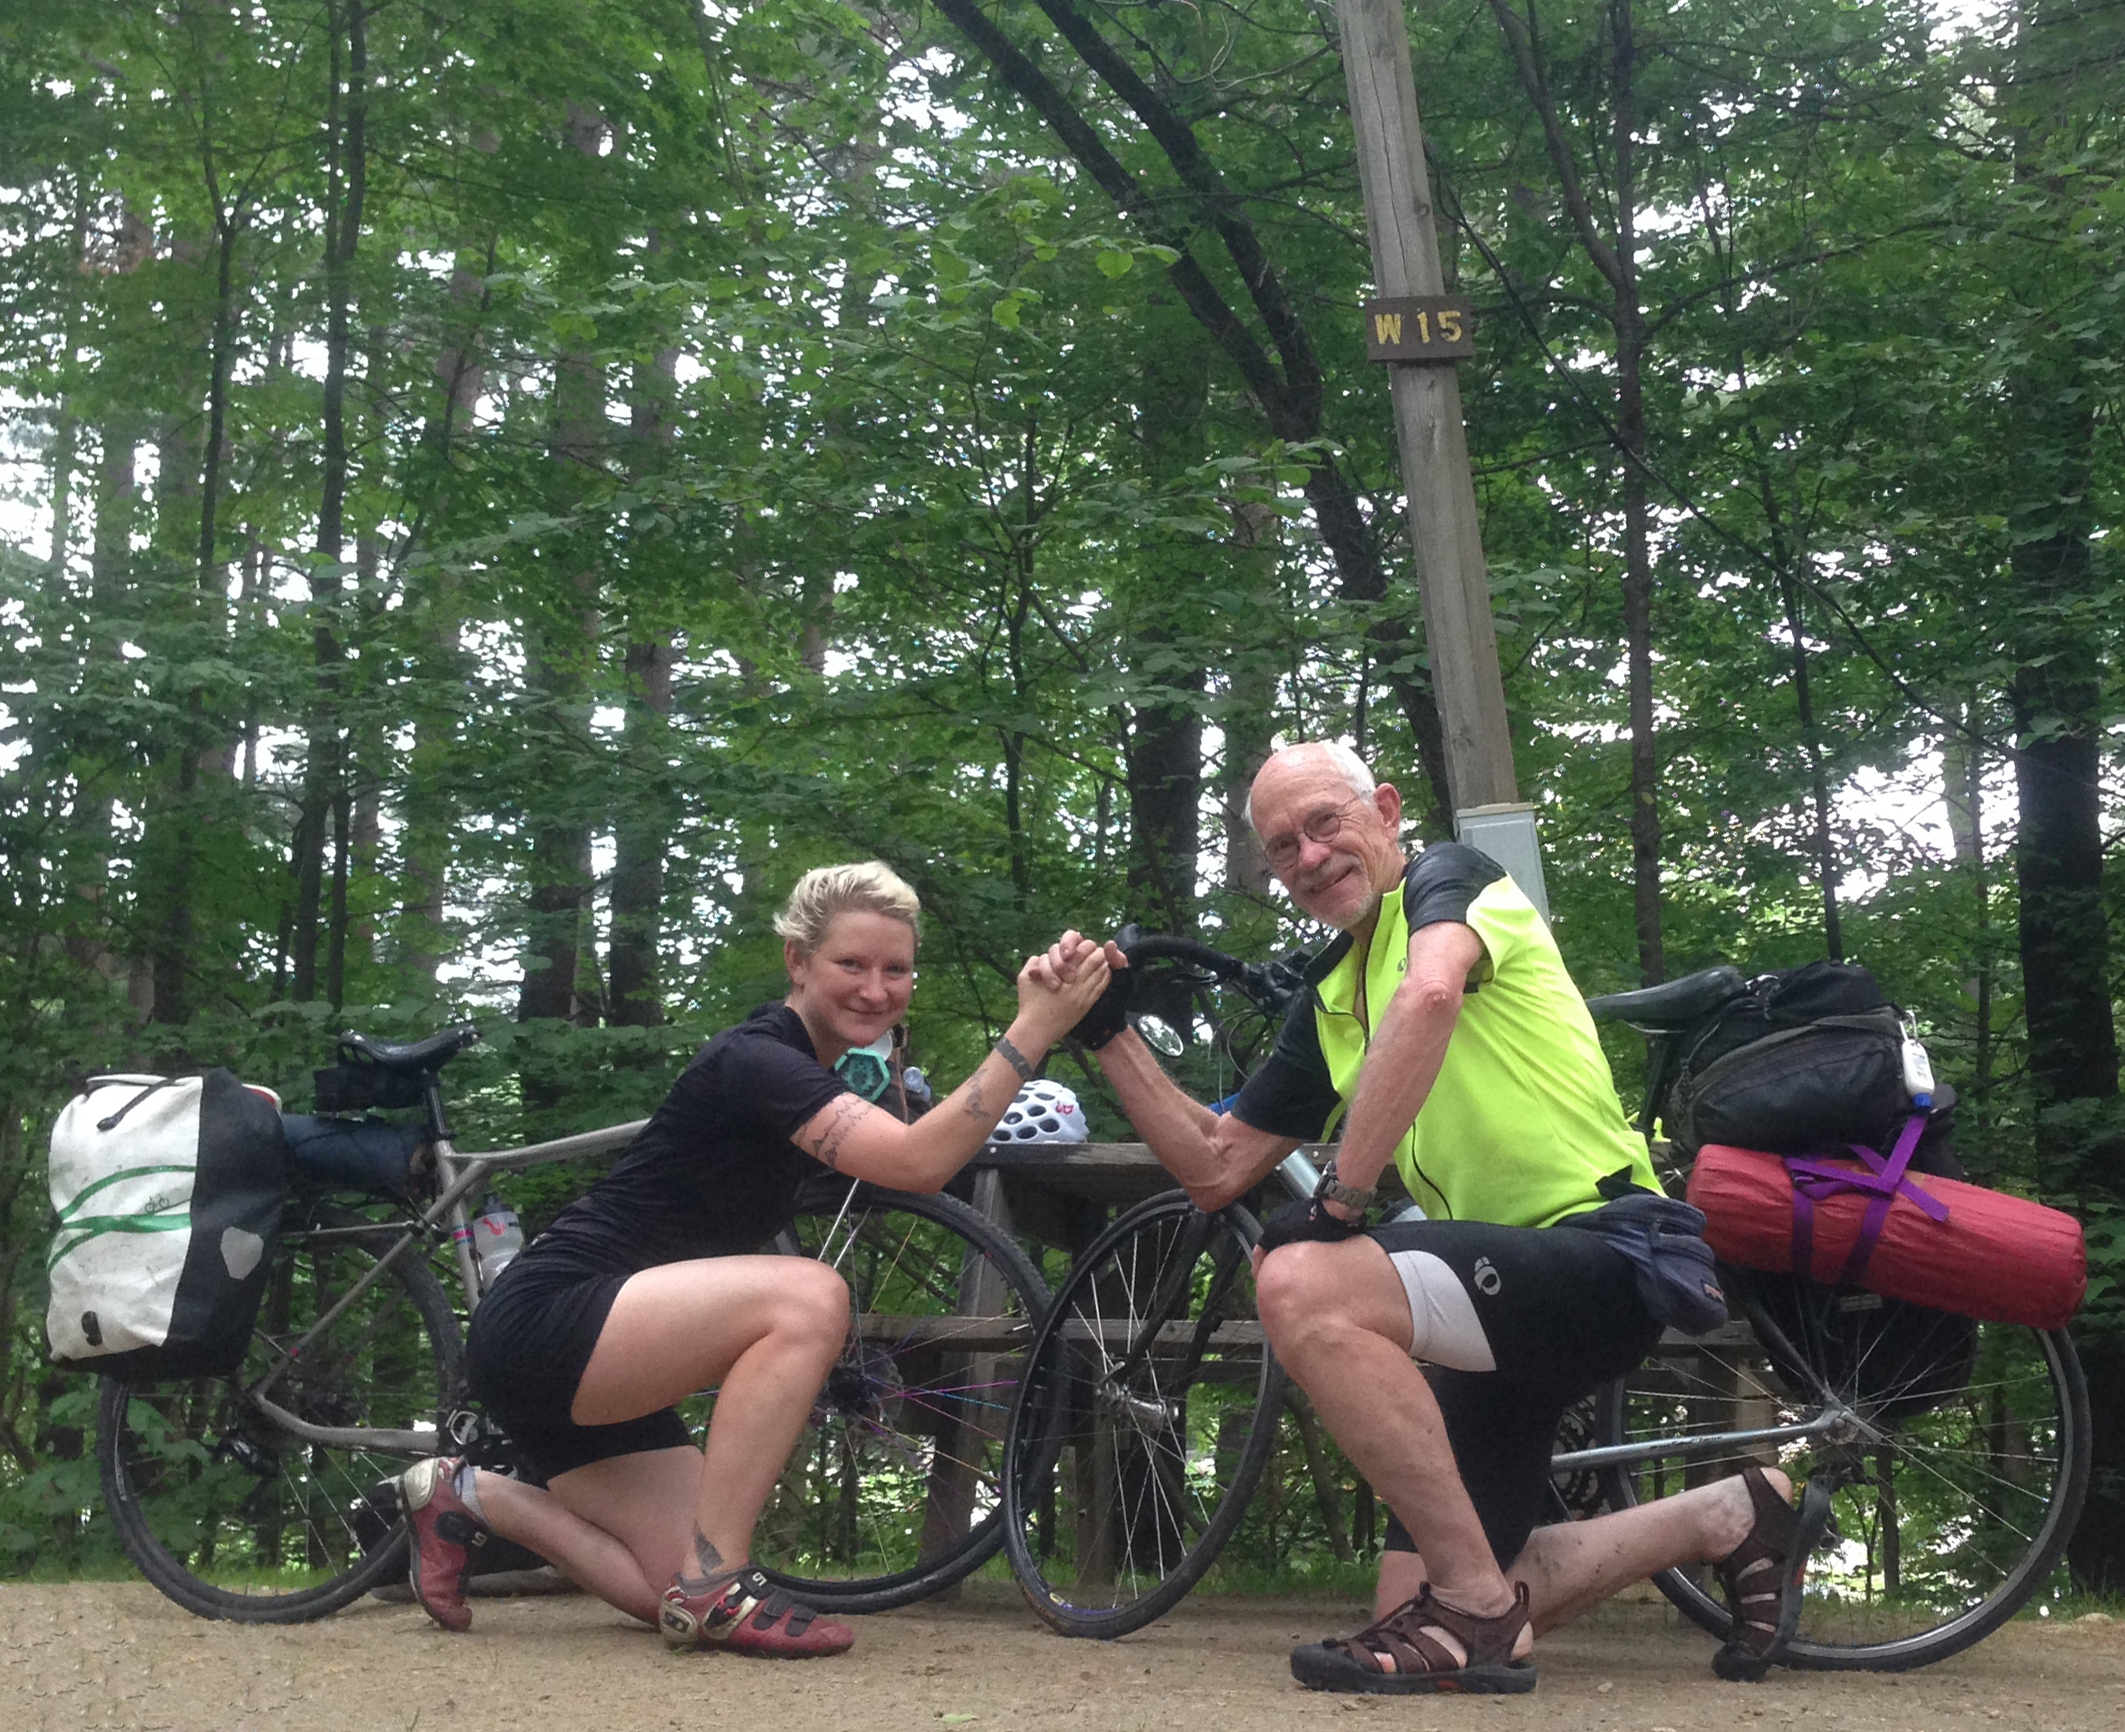 Papa Book's first day of fully loaded bike touring and first ever hard style.